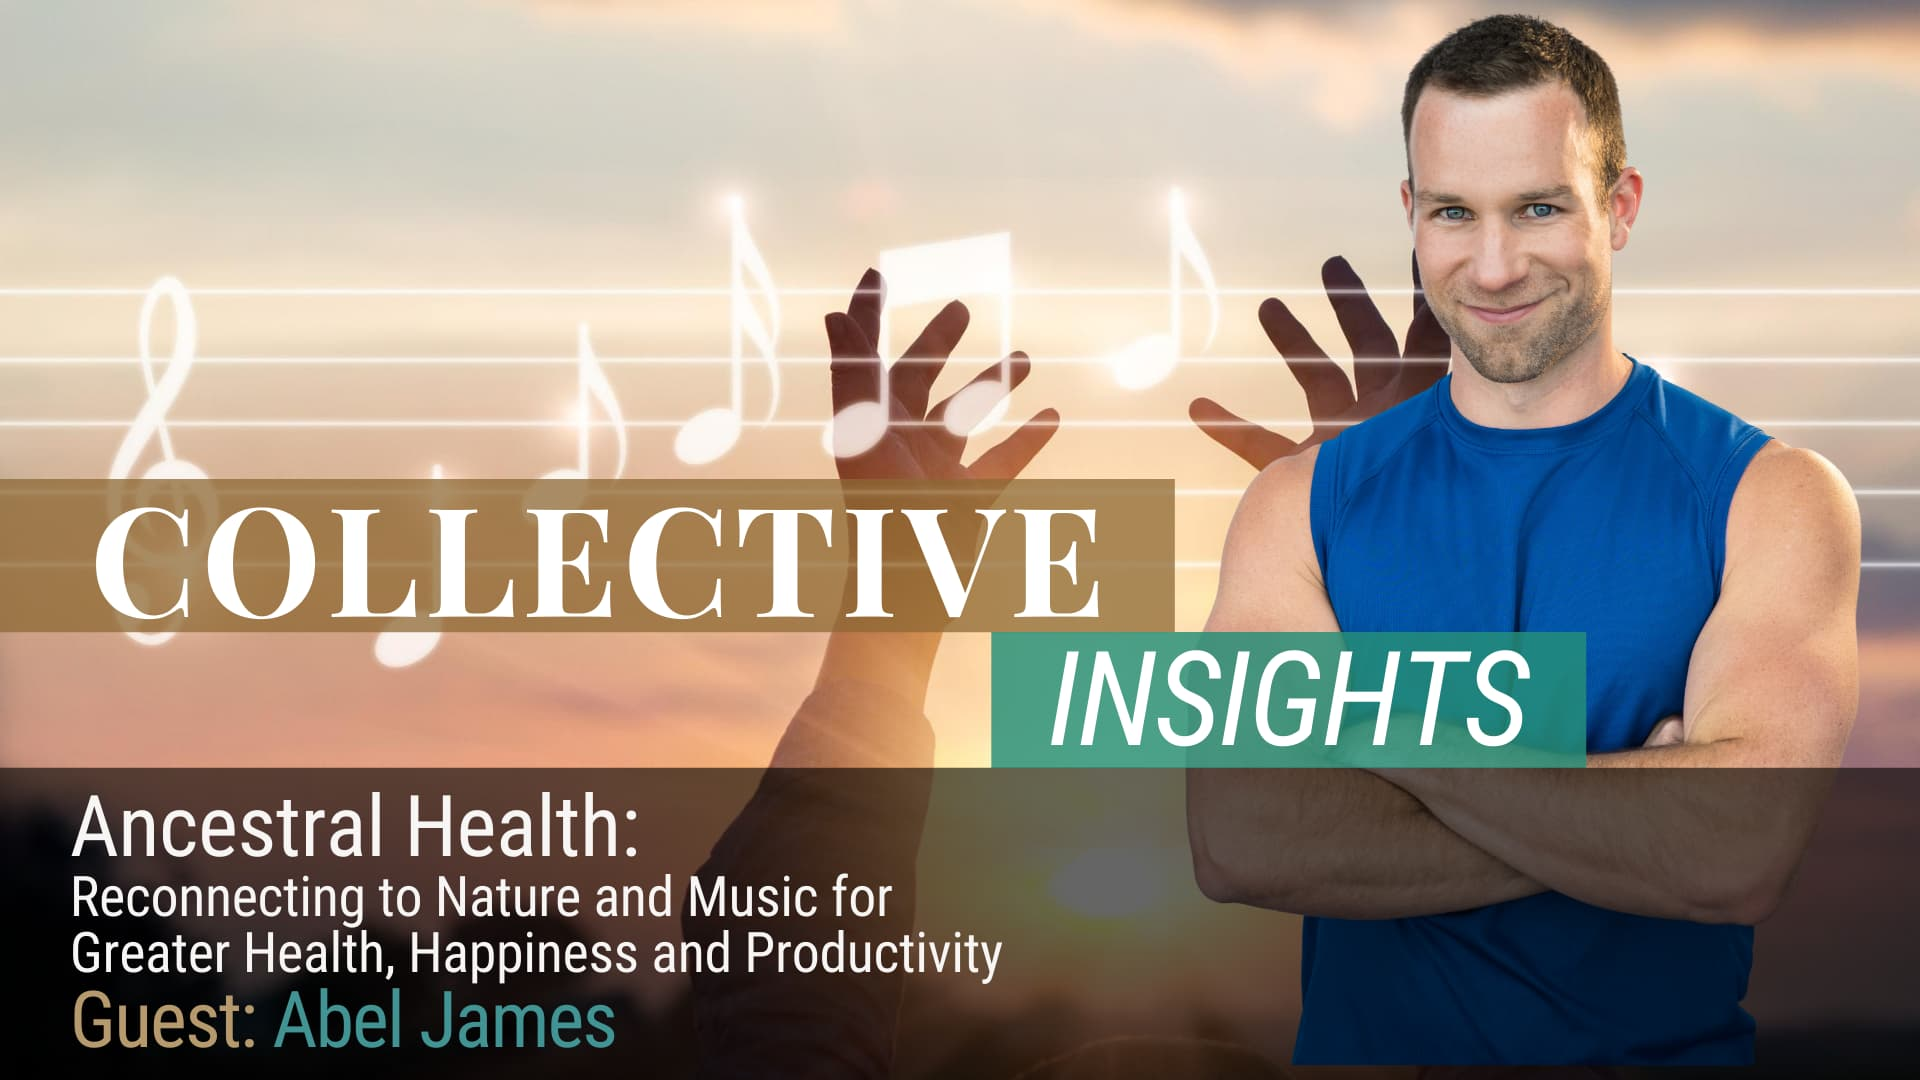 Ancestral Health: Reconnecting to Nature and Music for Greater Health, Happiness and Productivity